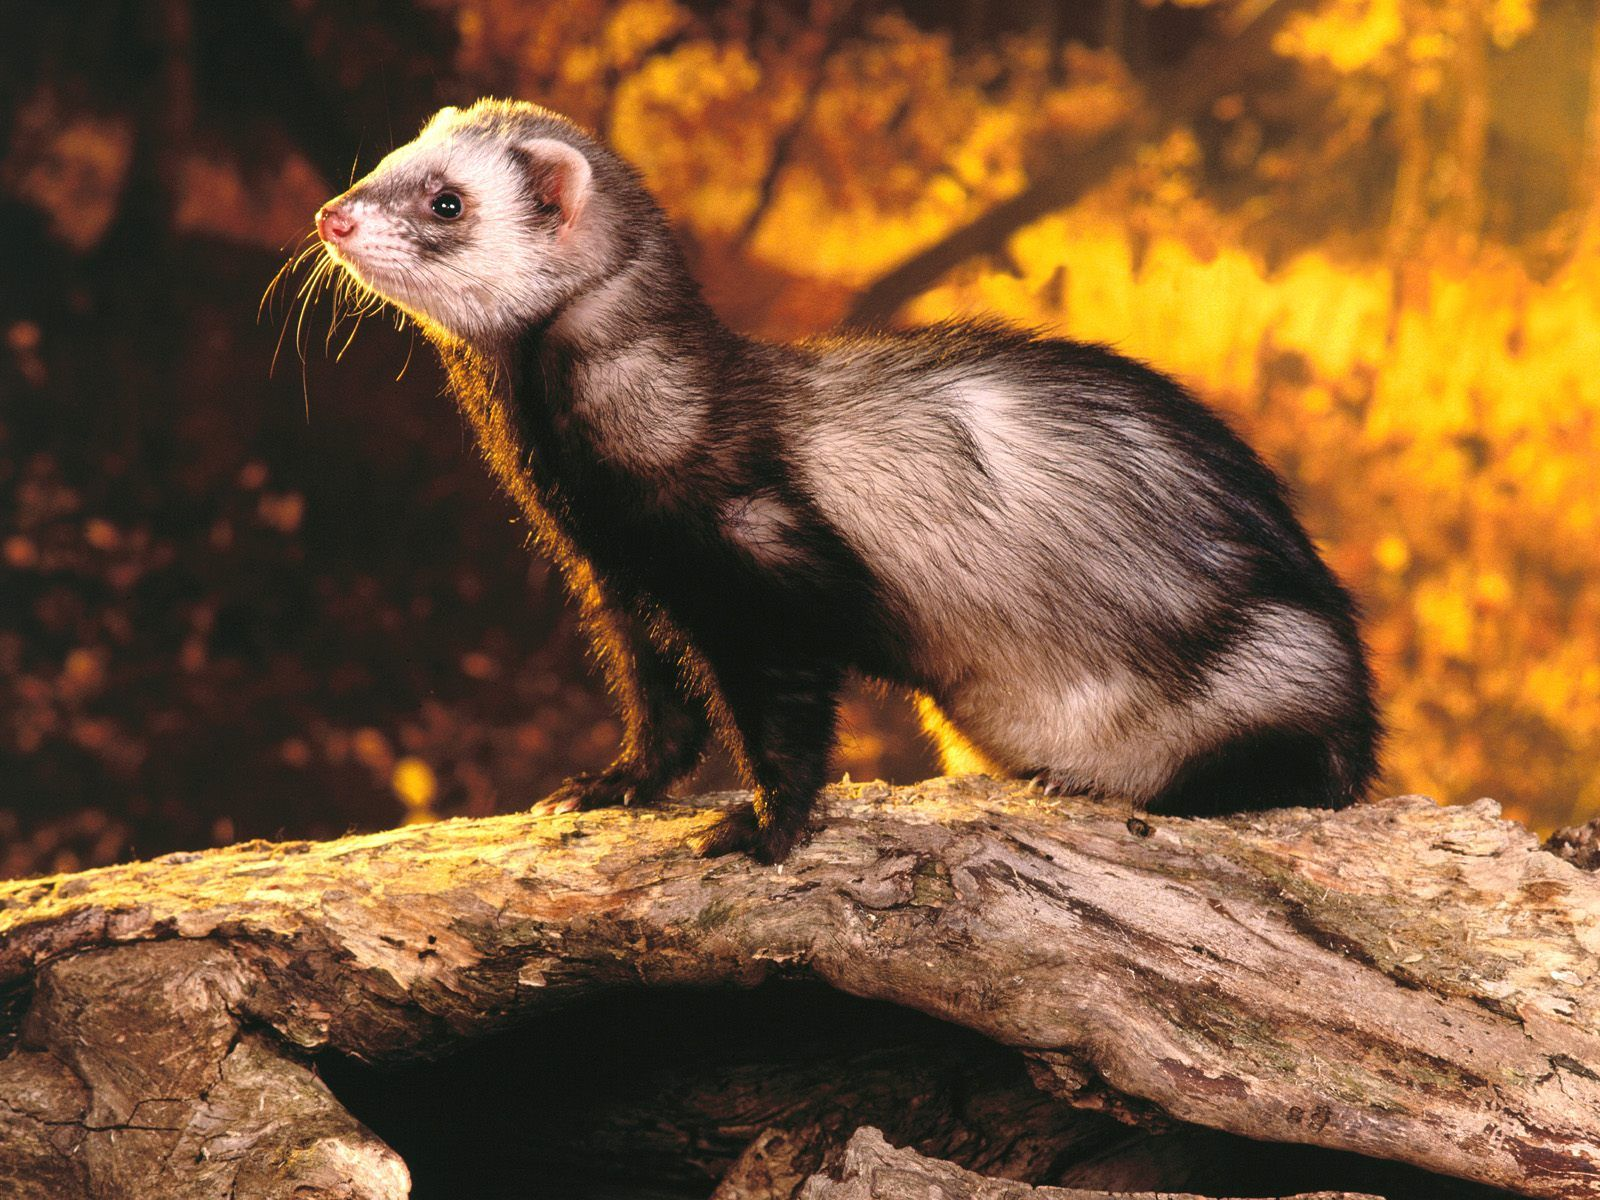 Free Ferret Wallpapers And Ferret Backgrounds Ferret Cute Ferrets Animals